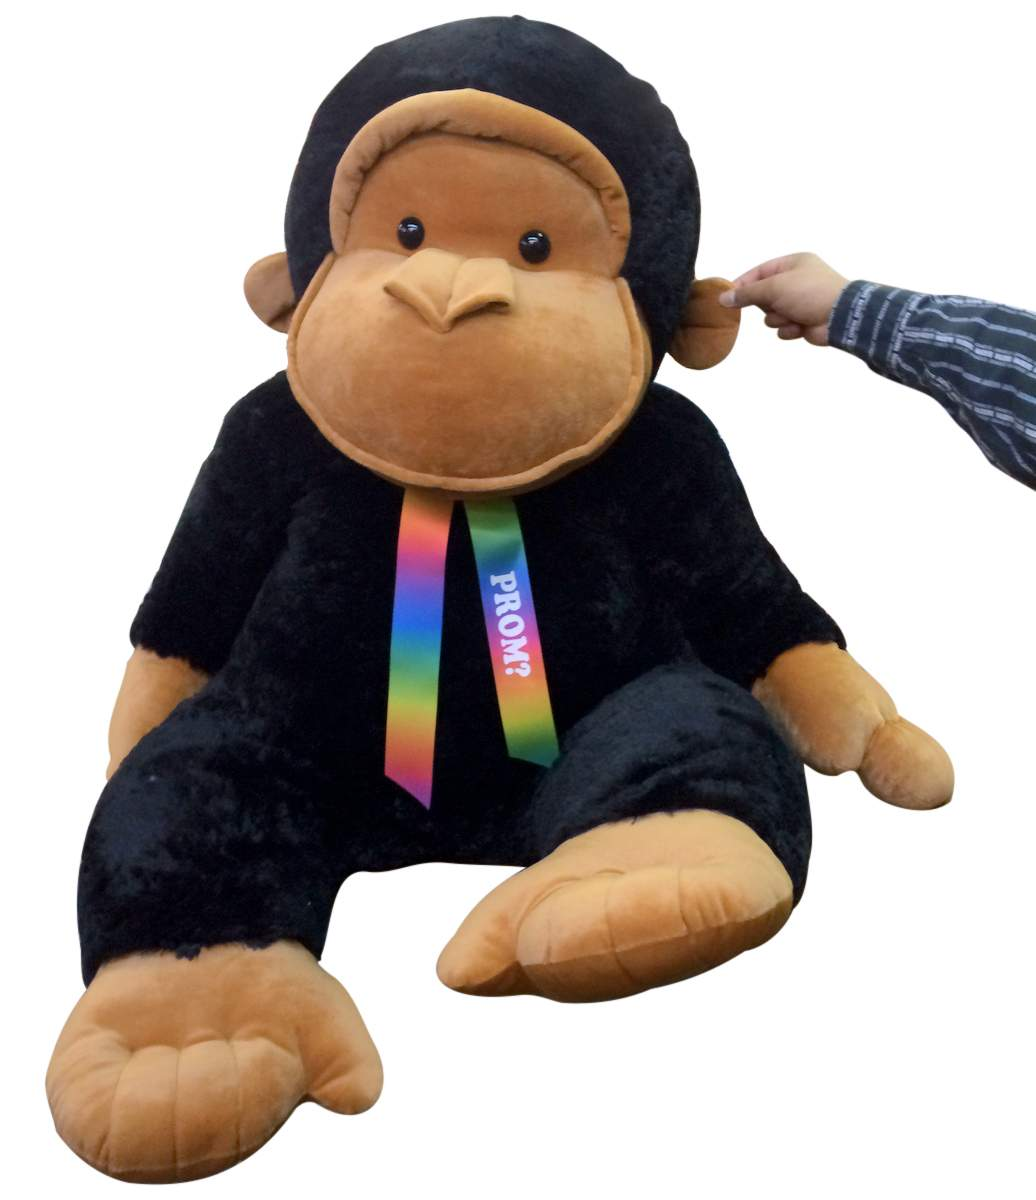 Free personalized neck ribbon for all Big Plush animals